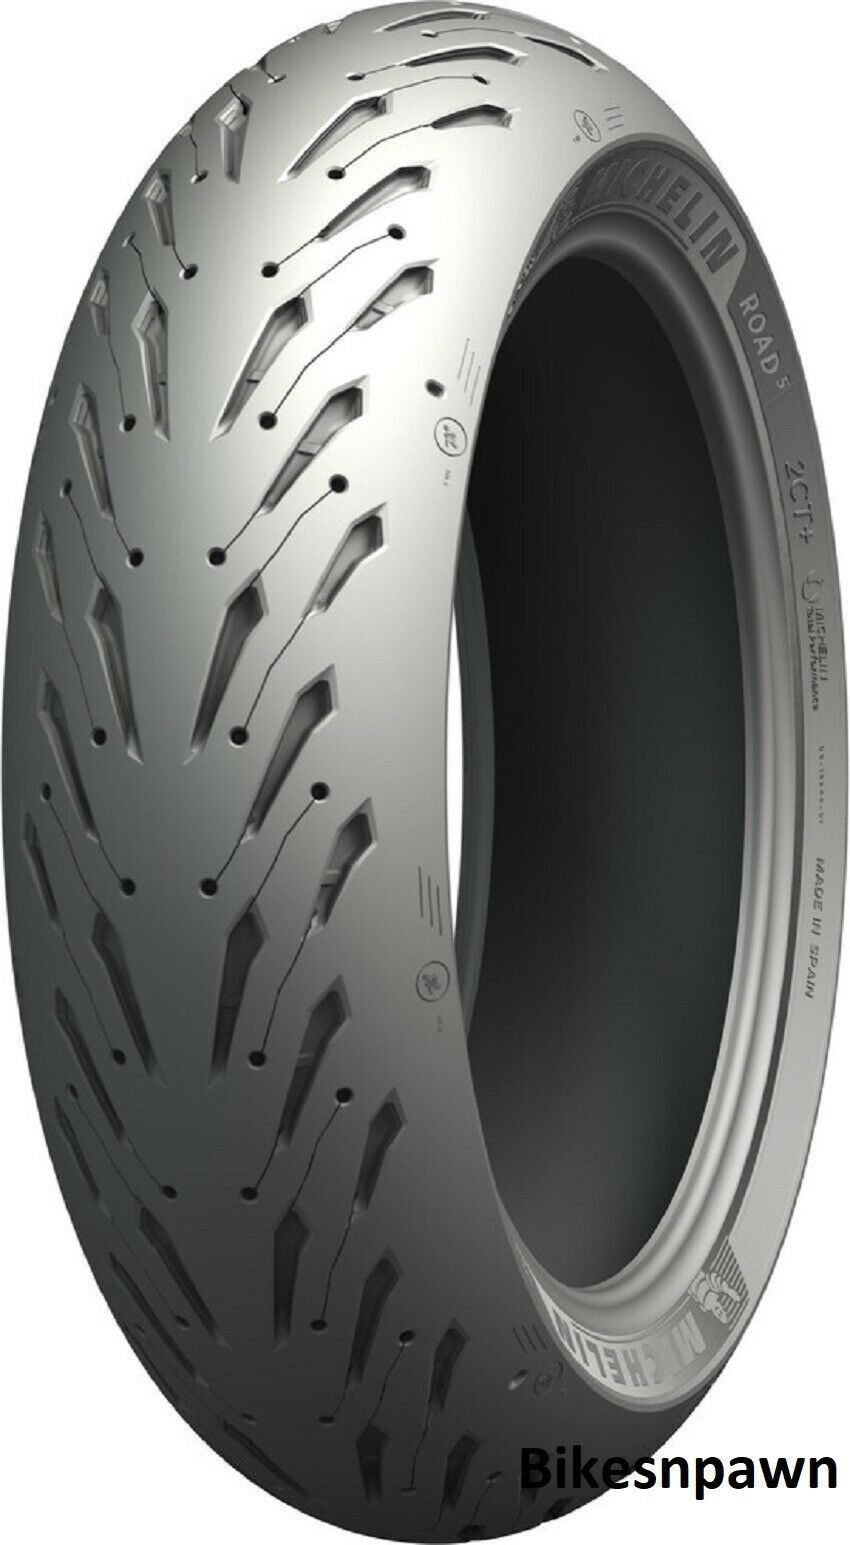 New Michelin Pilot Road 5 GT 180/55ZR17 Rear Radial Motorcycle Tire 73W 31842